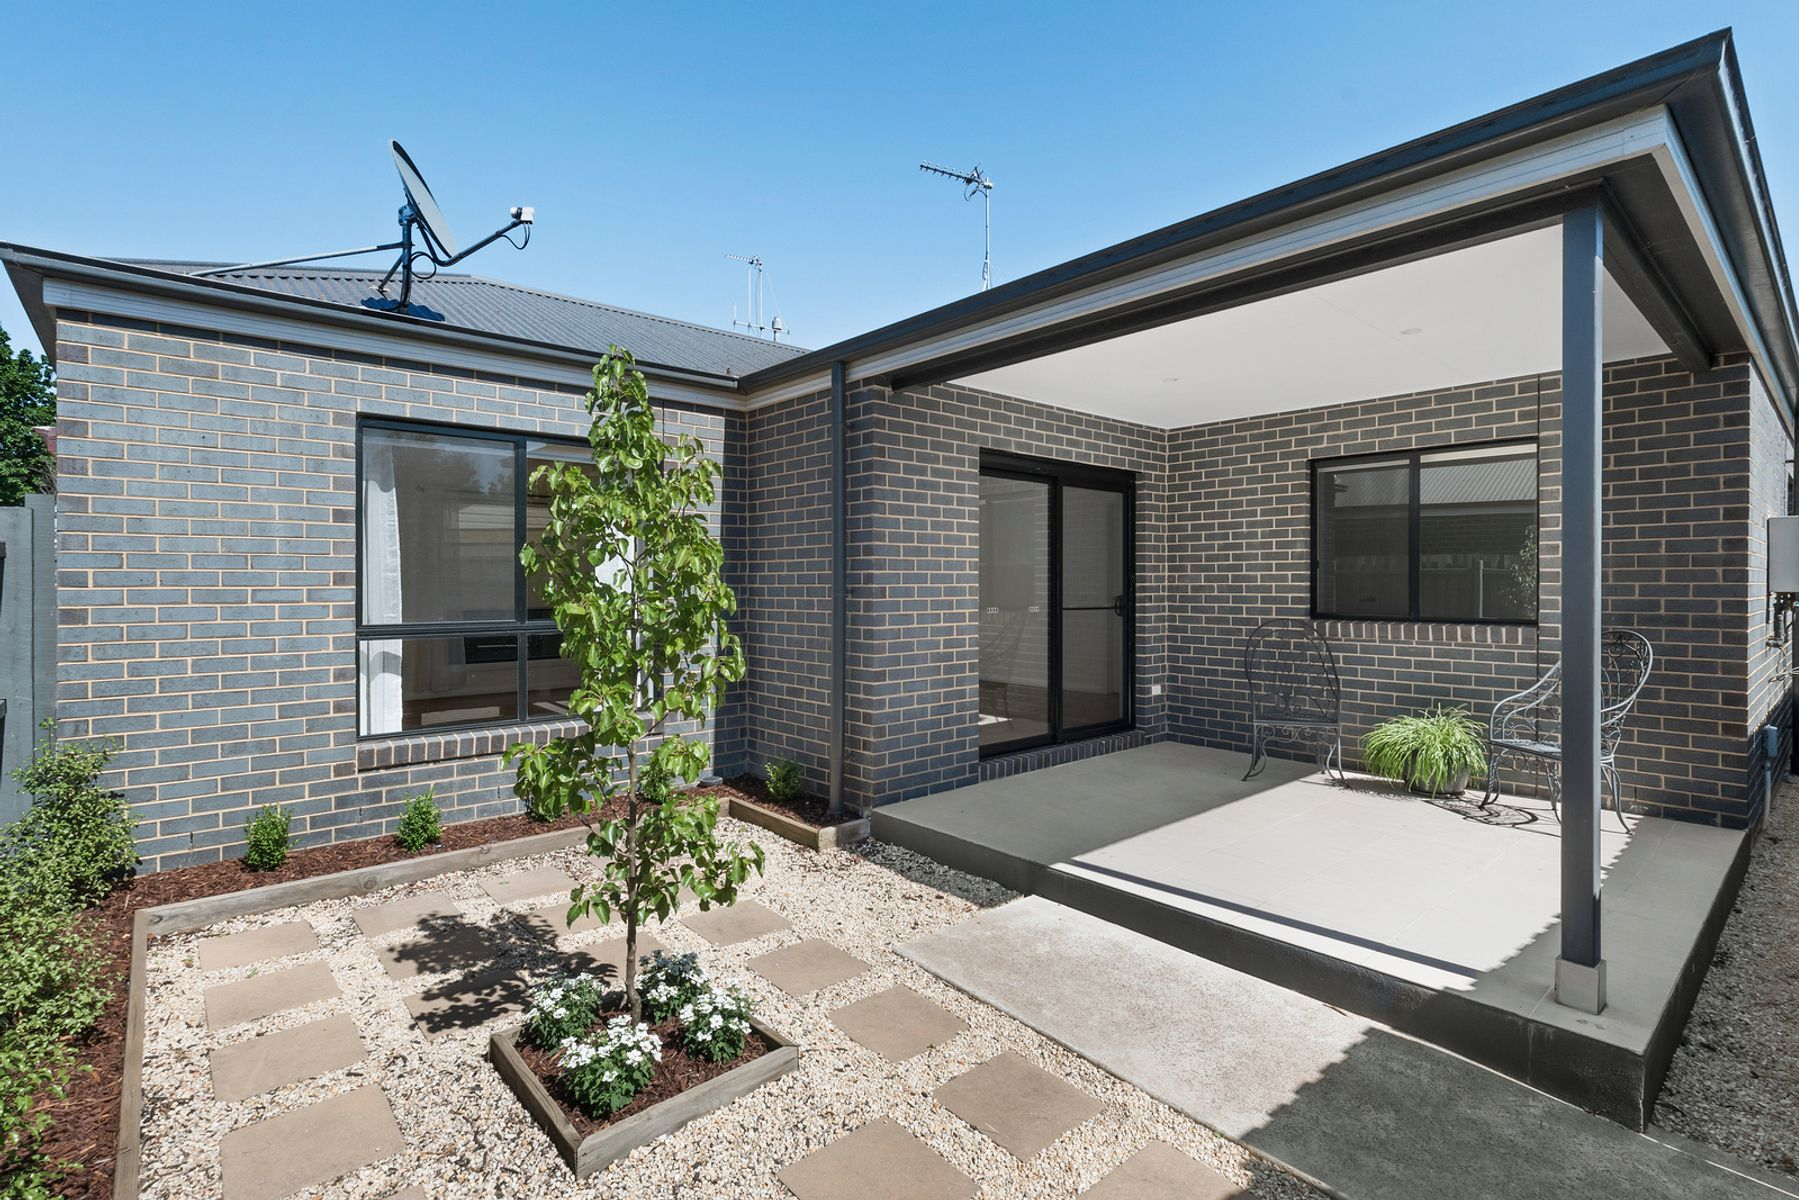 1/45 Mackenzie Street West, Golden Square, VIC 3555